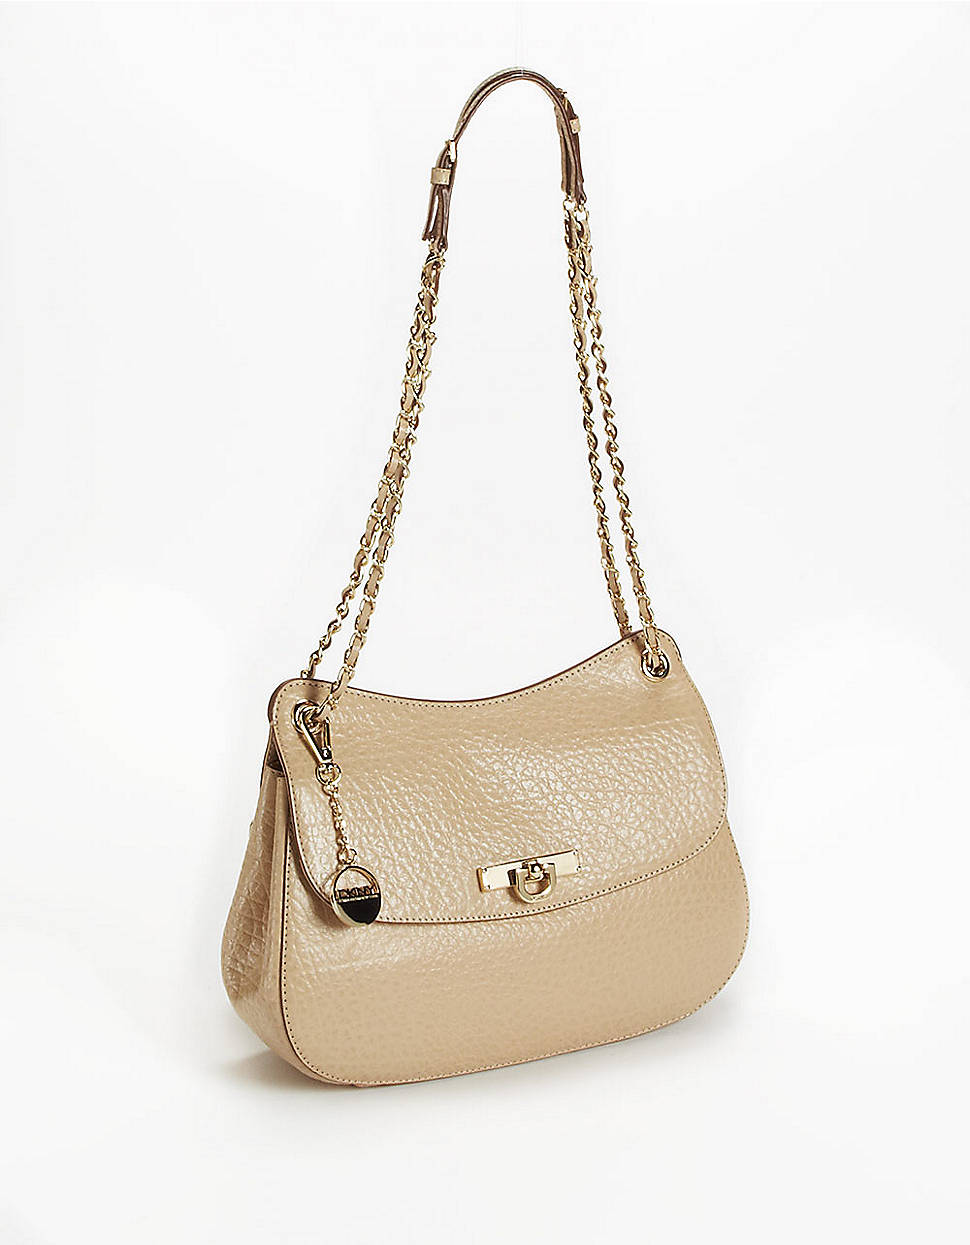 dkny beekman leather crossbody flap bag in beige sand lyst